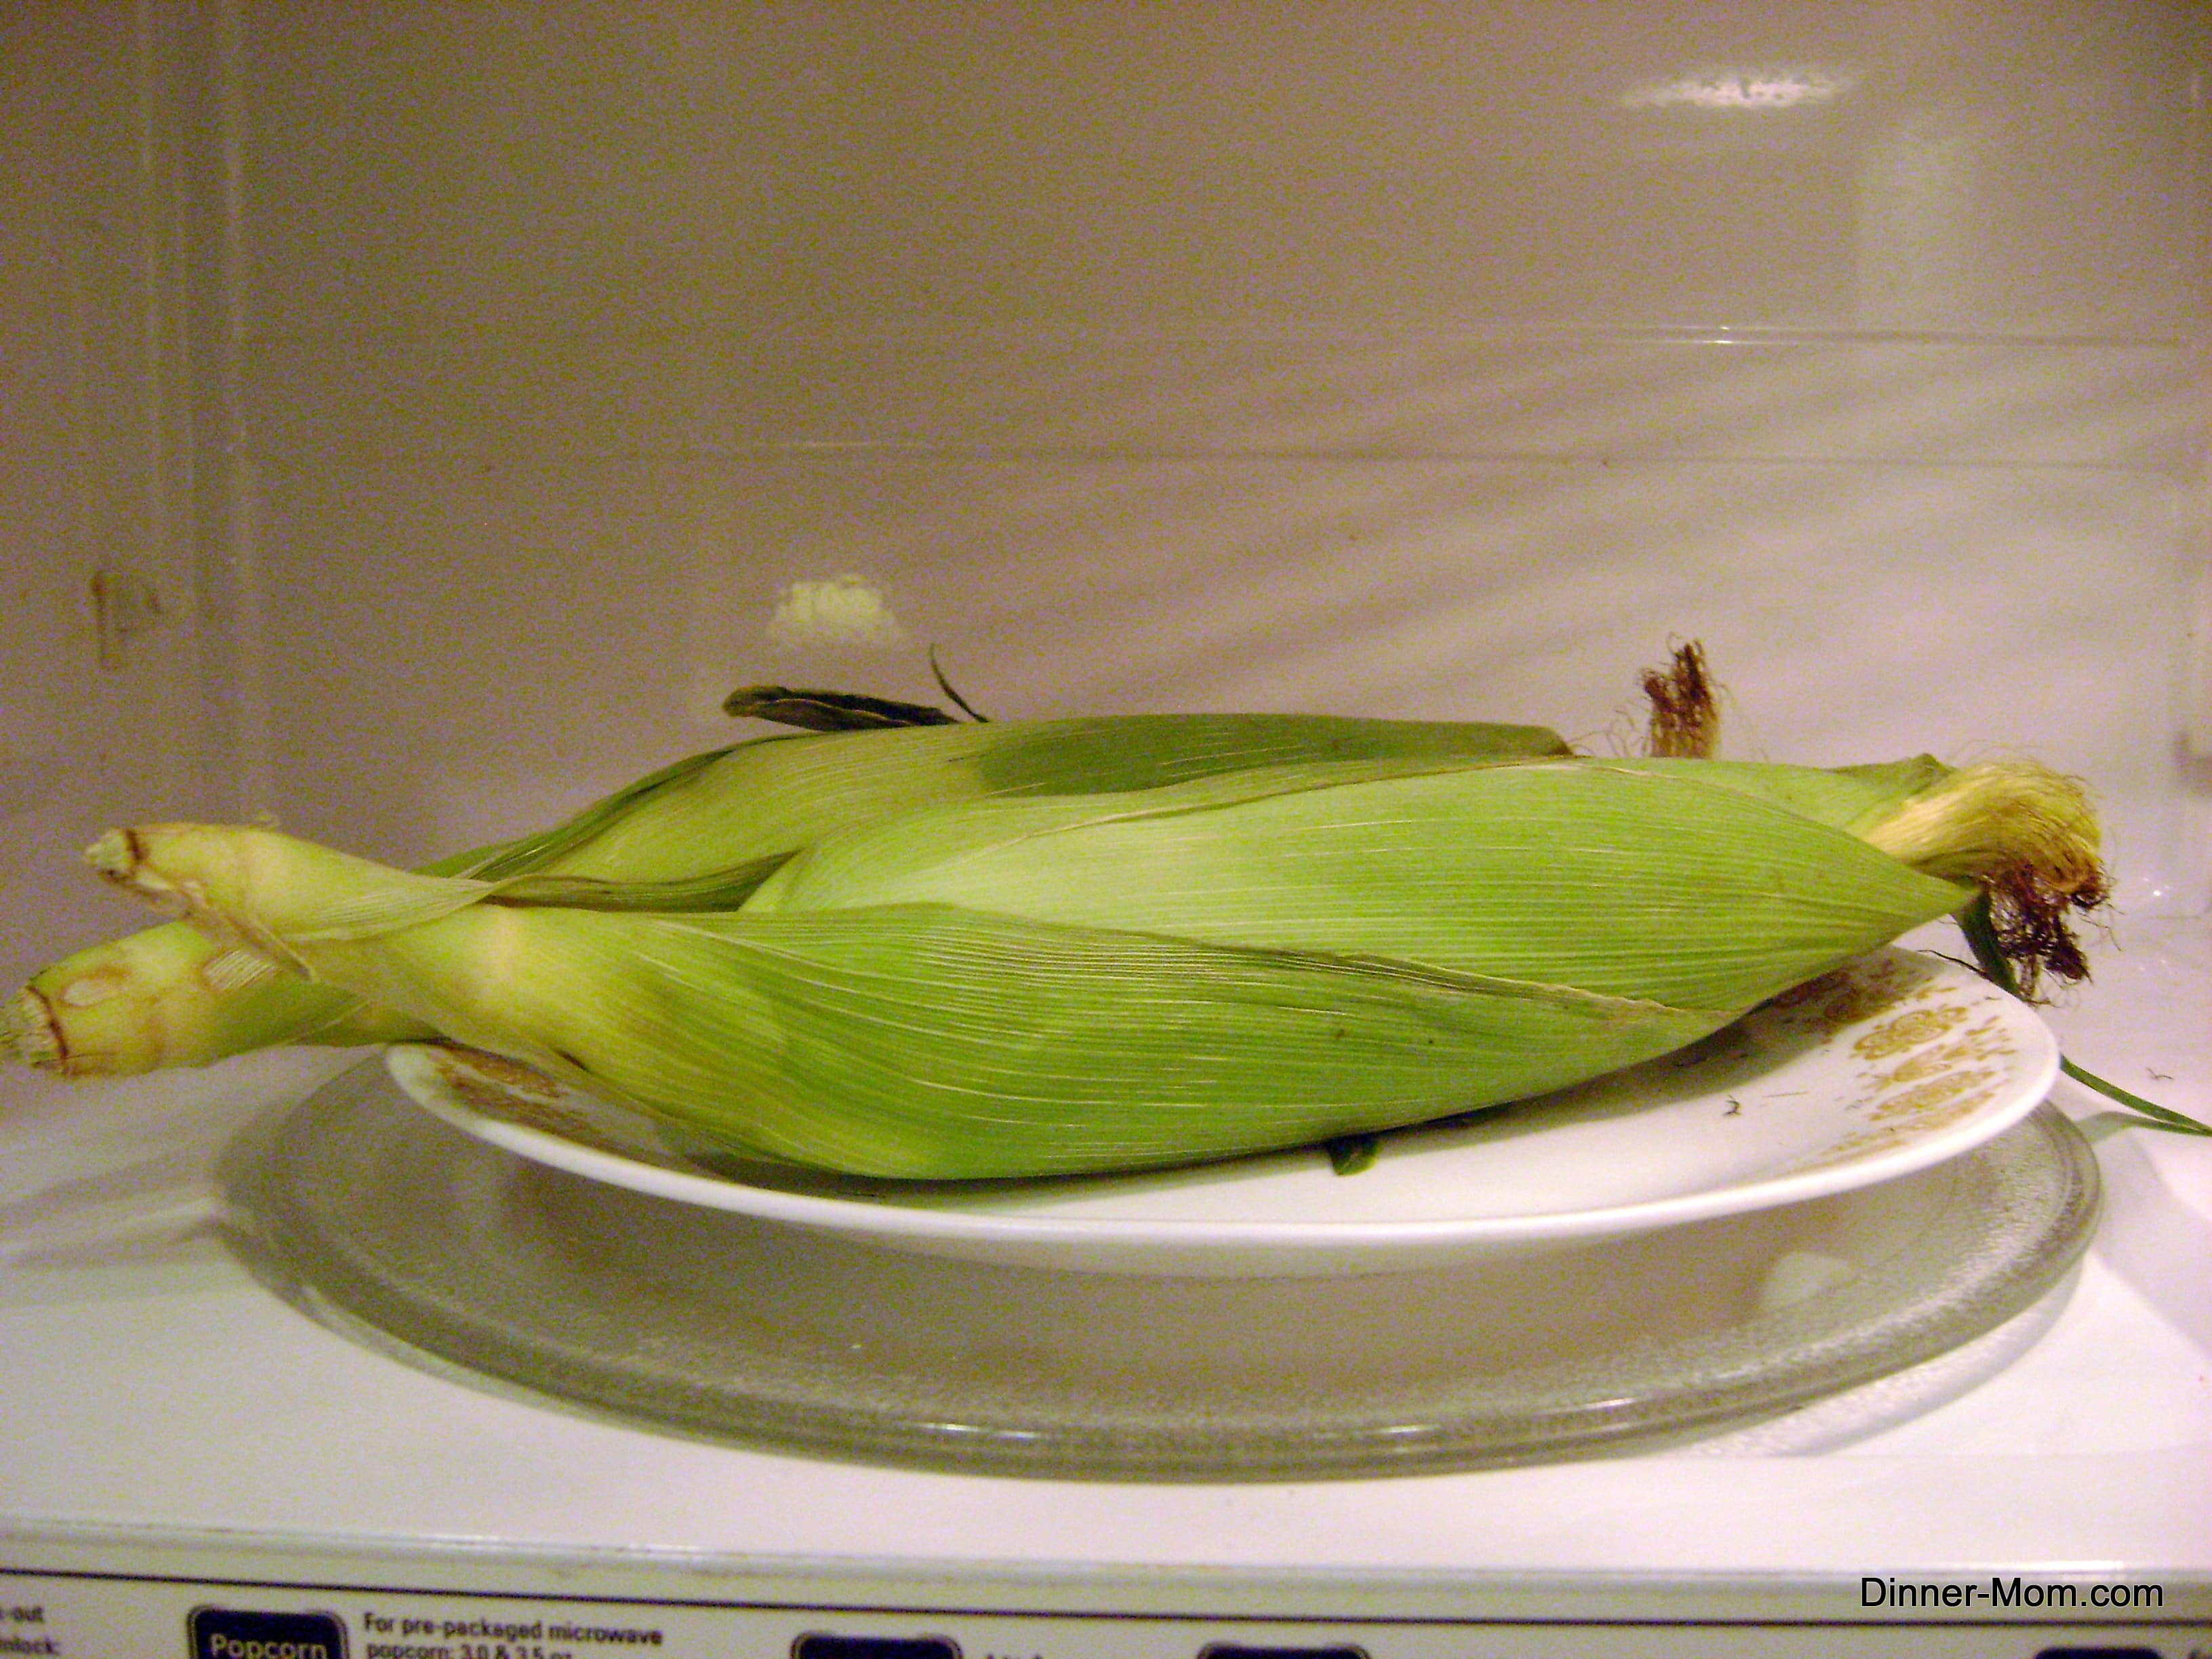 Corn on the cob in husk on plate in microwave.